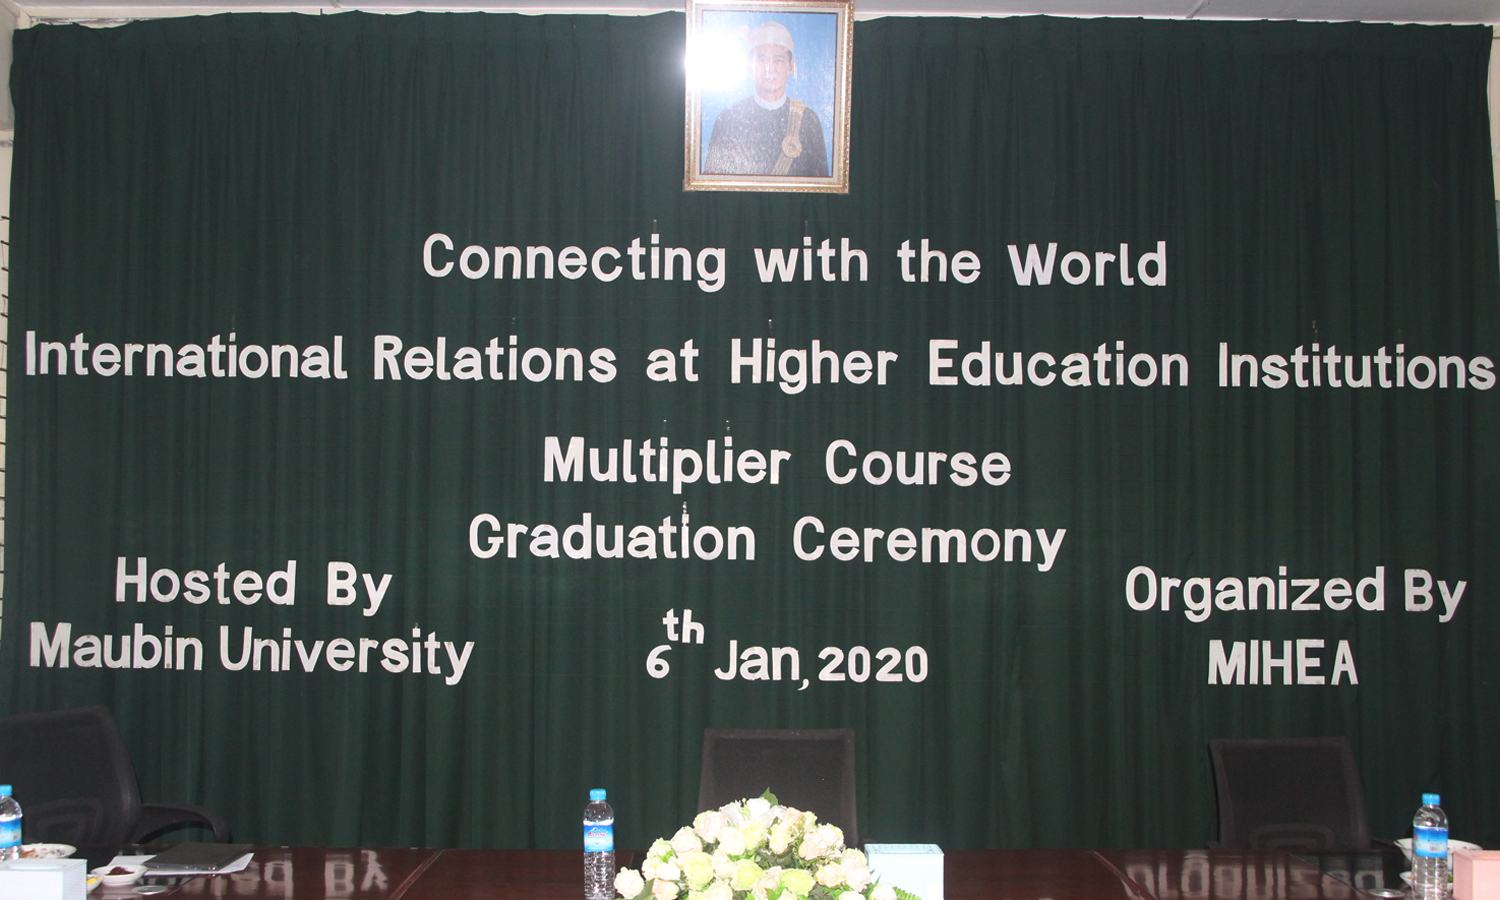 Certificate Graduation Ceremony held for the Connecting with the World Multiplier Course (1/2019)